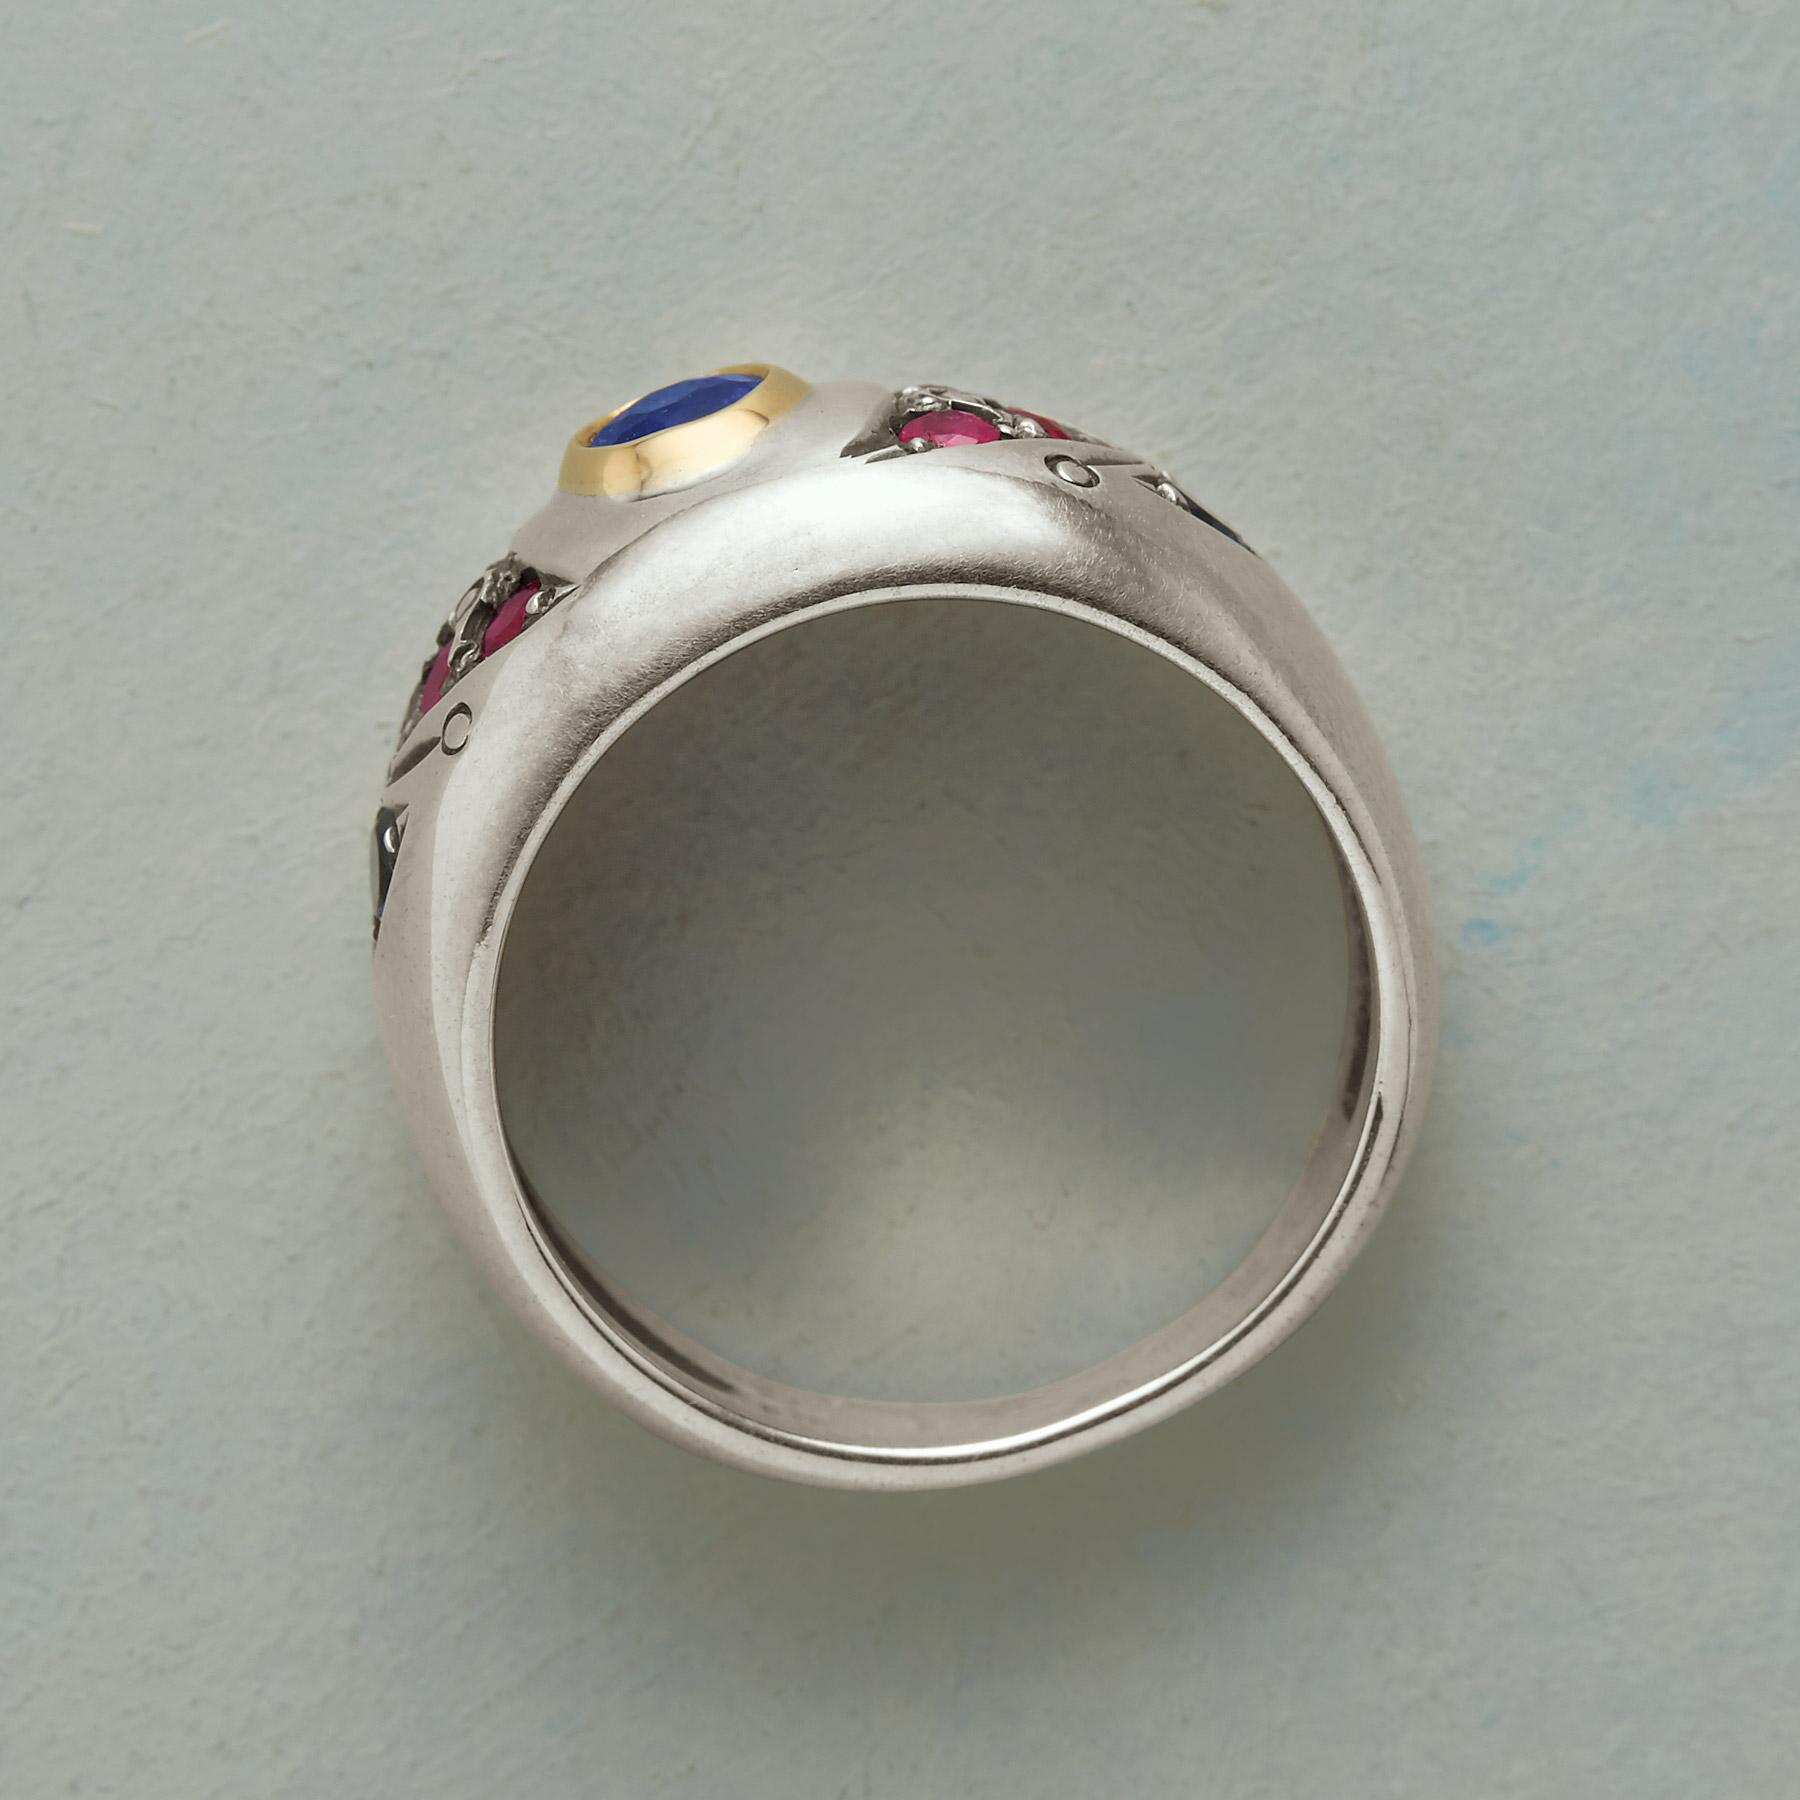 NOVO DECO RING: View 2